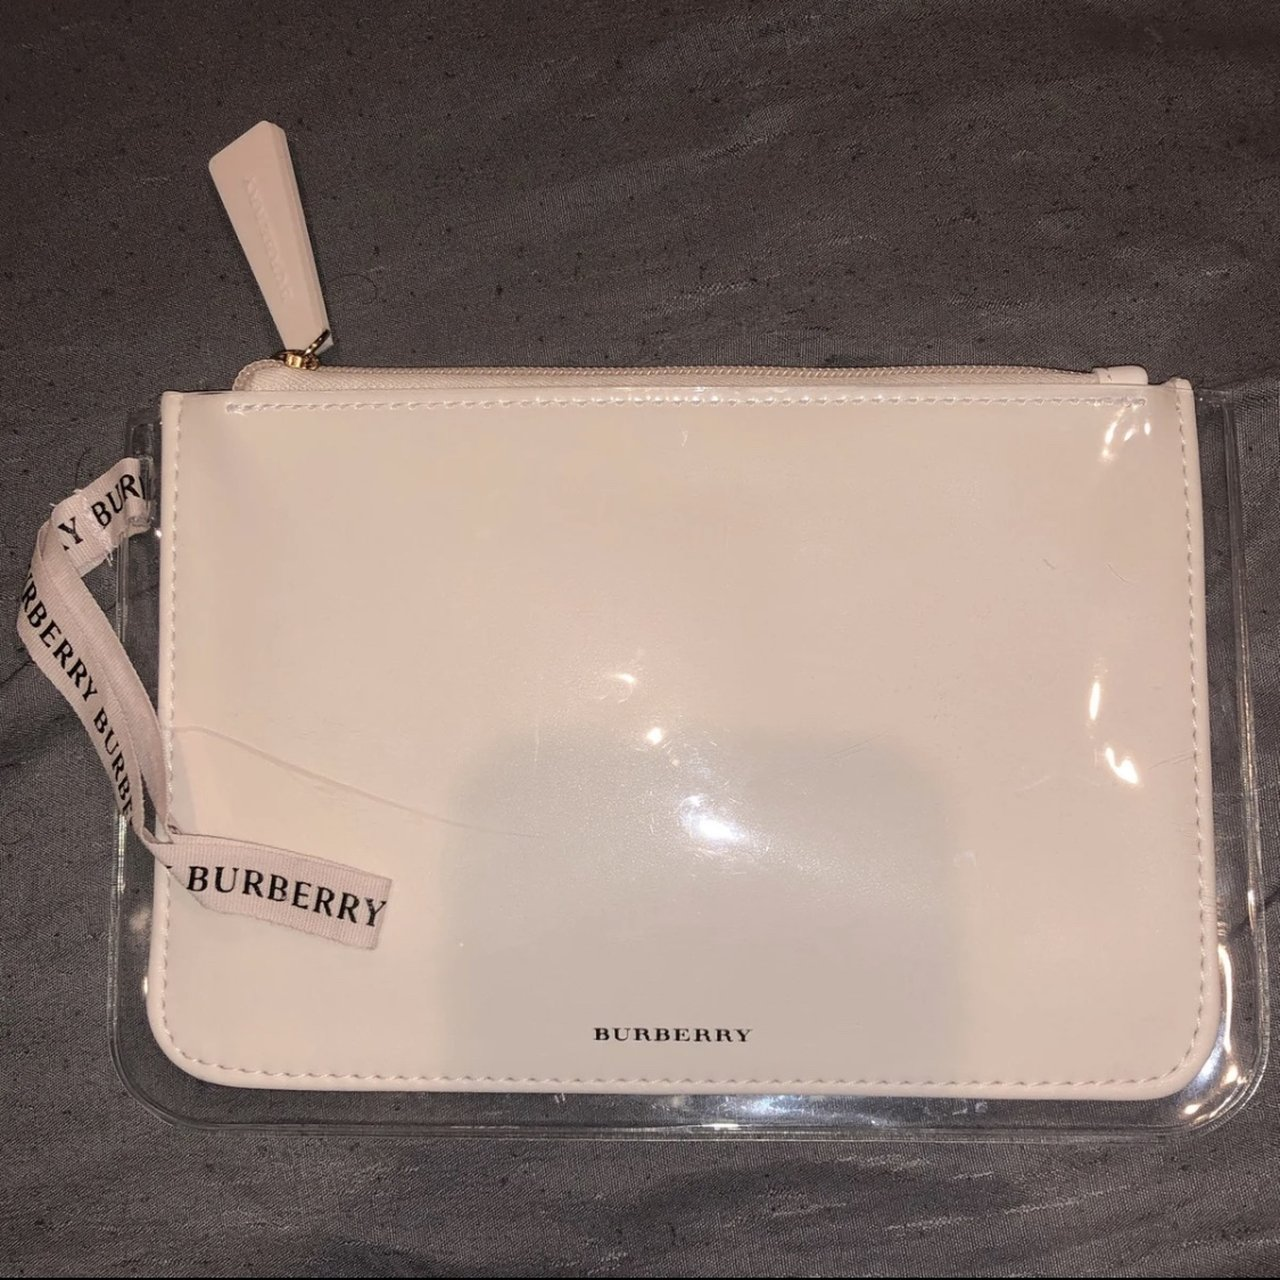 049c647ee5f3 Authentic Burberry Cosmetics Bag Glossy blush pink cream was - Depop